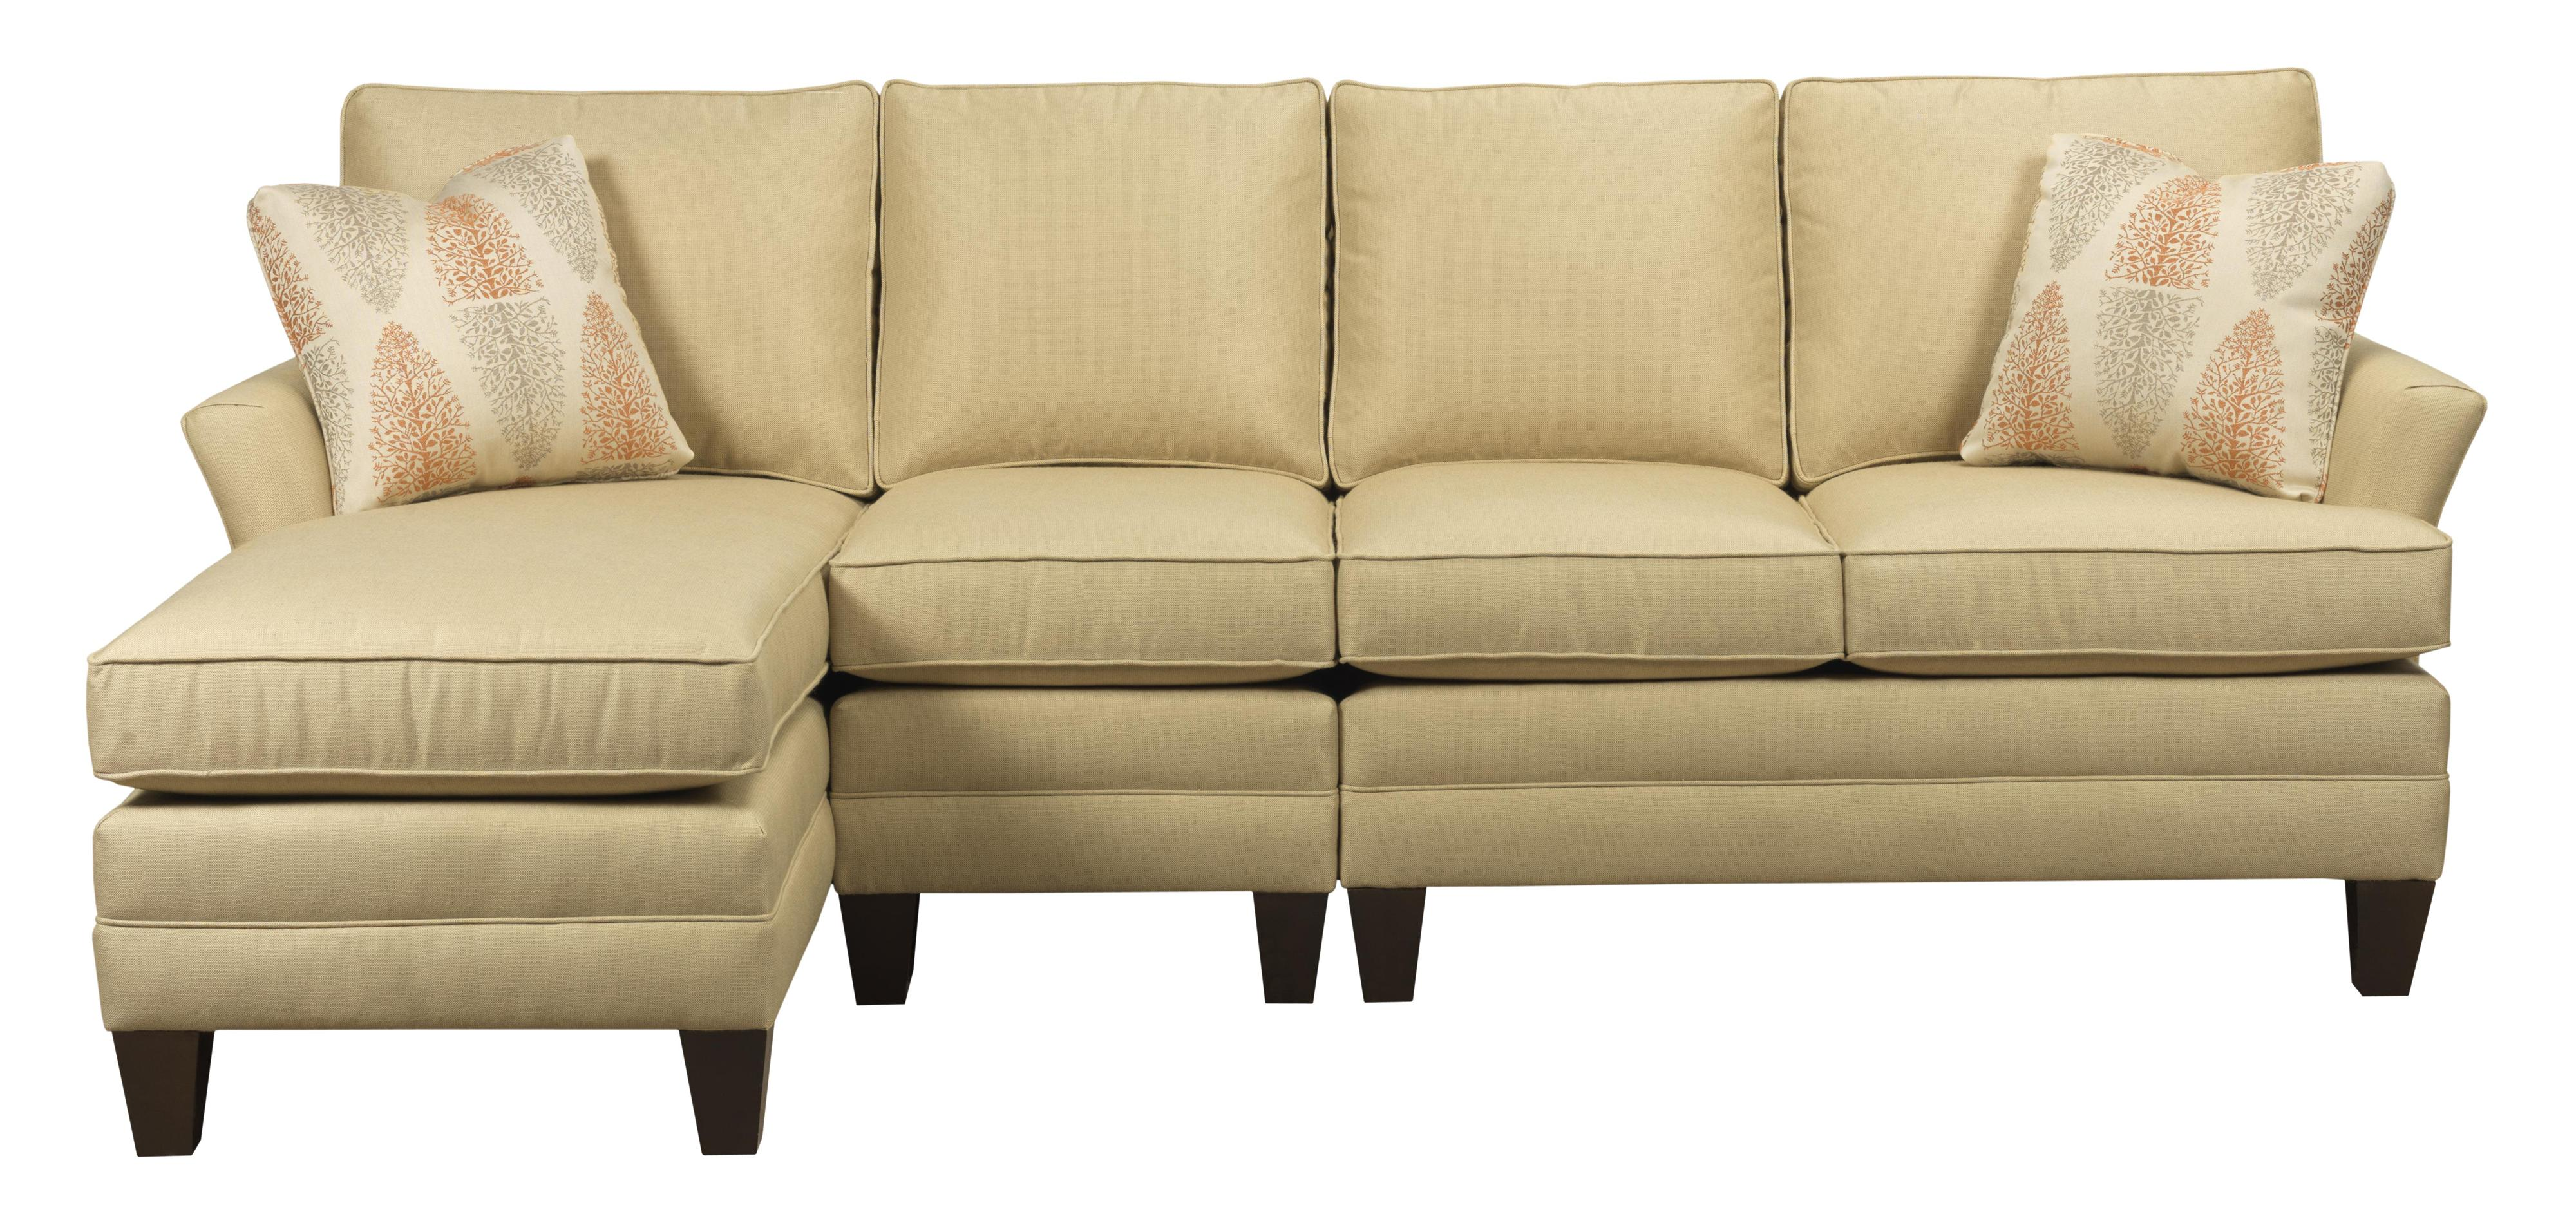 Customizable three piece sectional sofa with raf chaise by for 3 piece sectional sofa with chaise